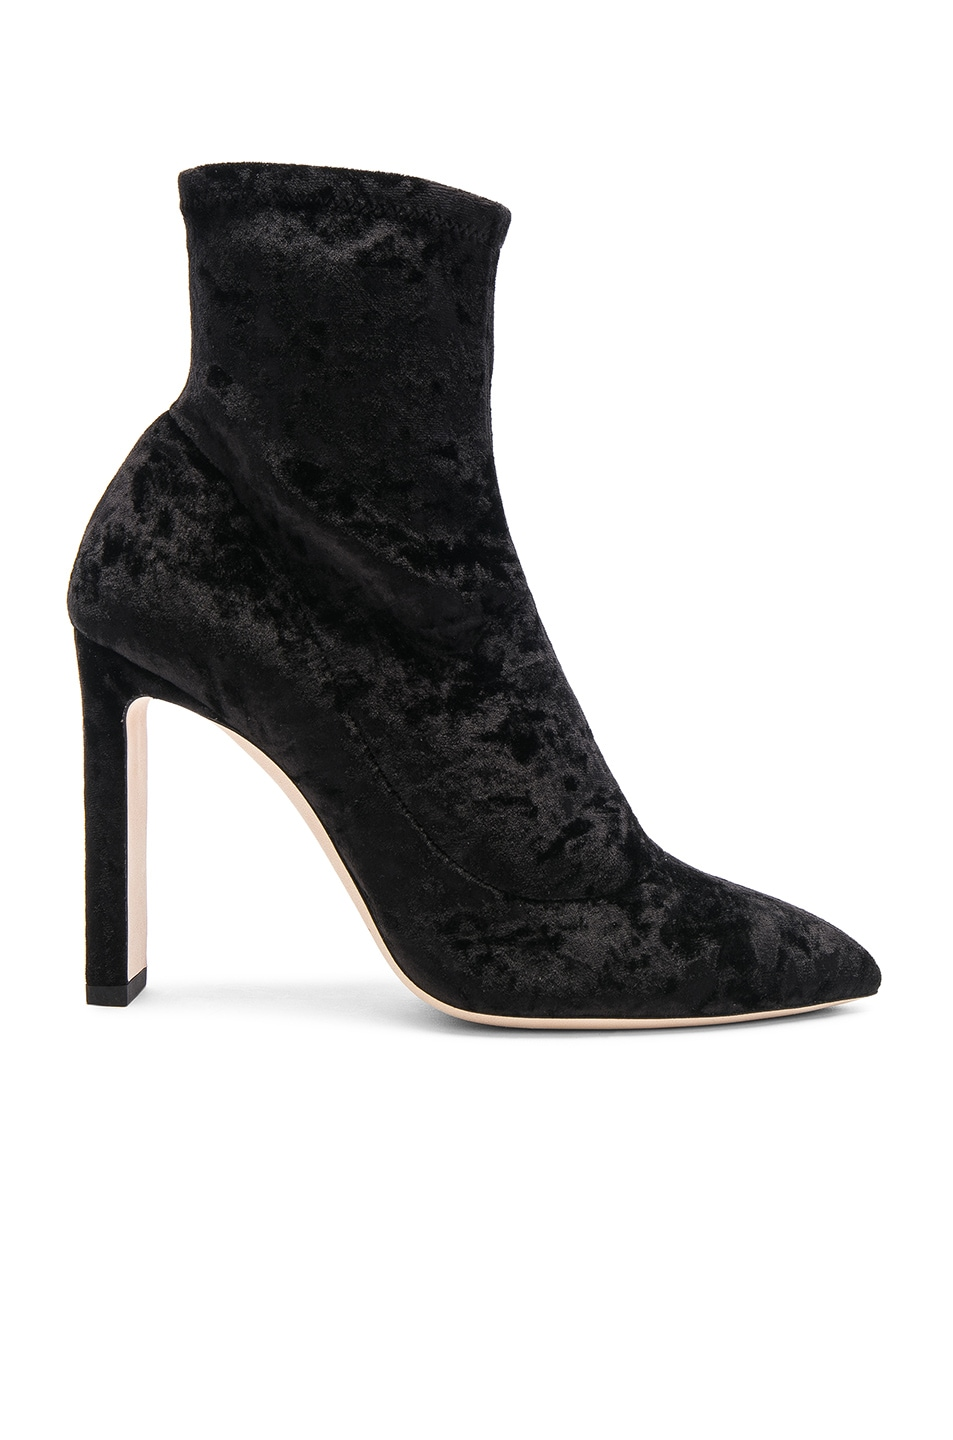 Image 1 of Jimmy Choo Louella 100 Crushed Velvet Boots in Black